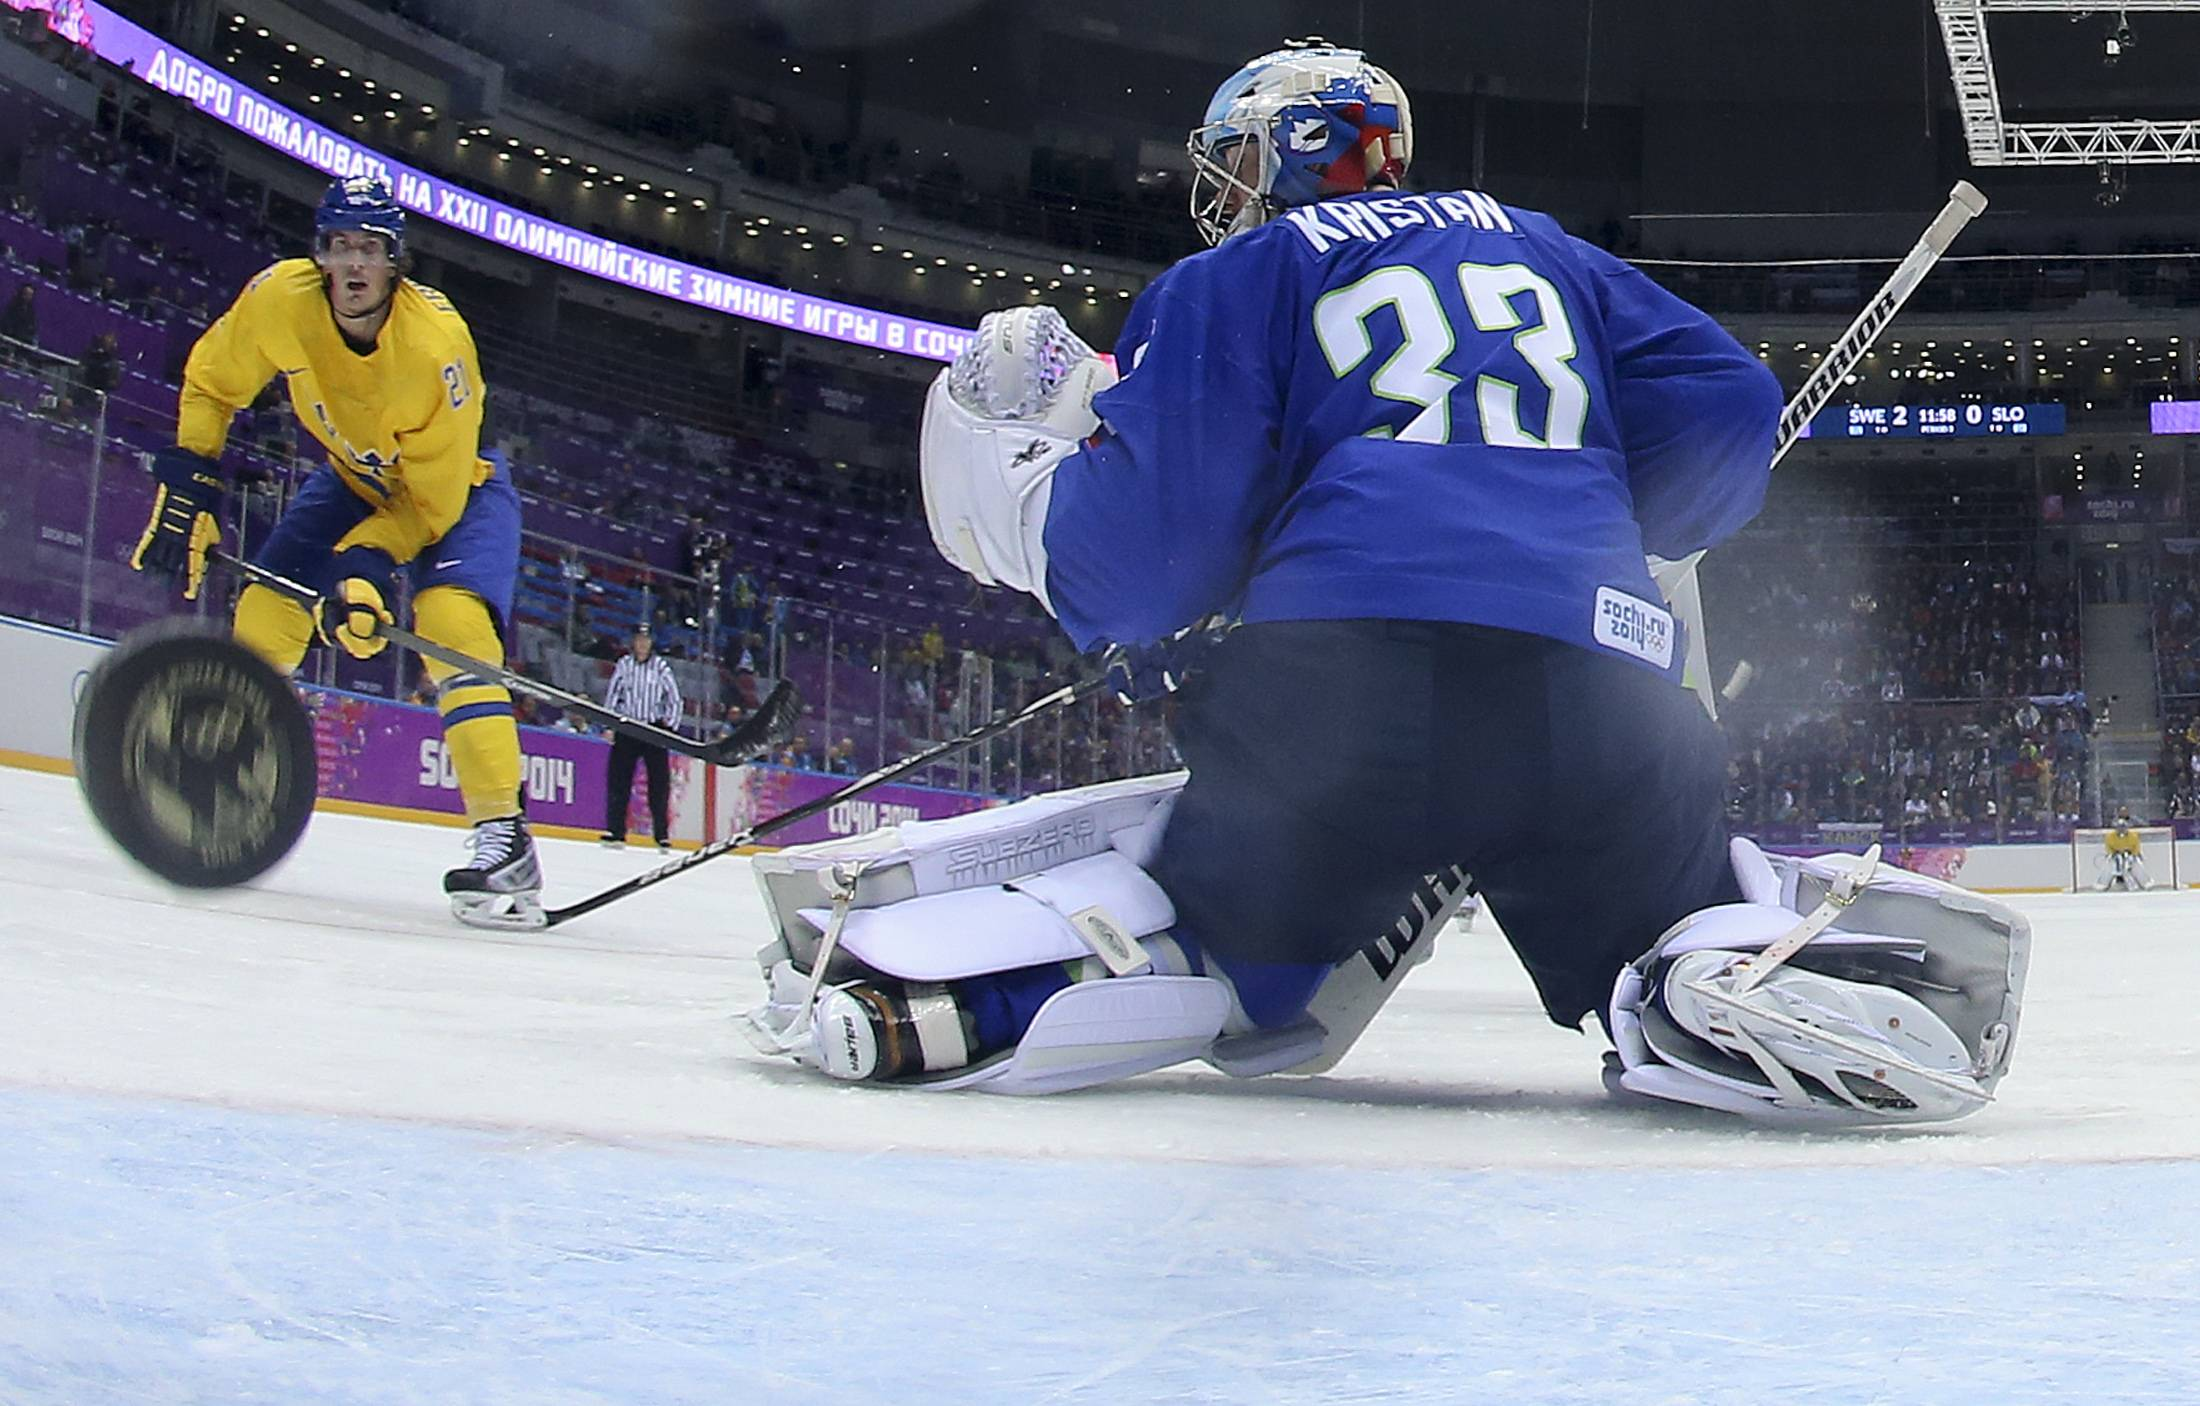 Sweden forward Loui Eriksson shoots and scores against Slovenia goaltender Robert Kristan in the third period of a men's ice hockey game at the 2014 Winter Olympics, Wednesday, Feb. 19, 2014, in Sochi, Russia. Sweden won 5-0 to advance to the semifinals.